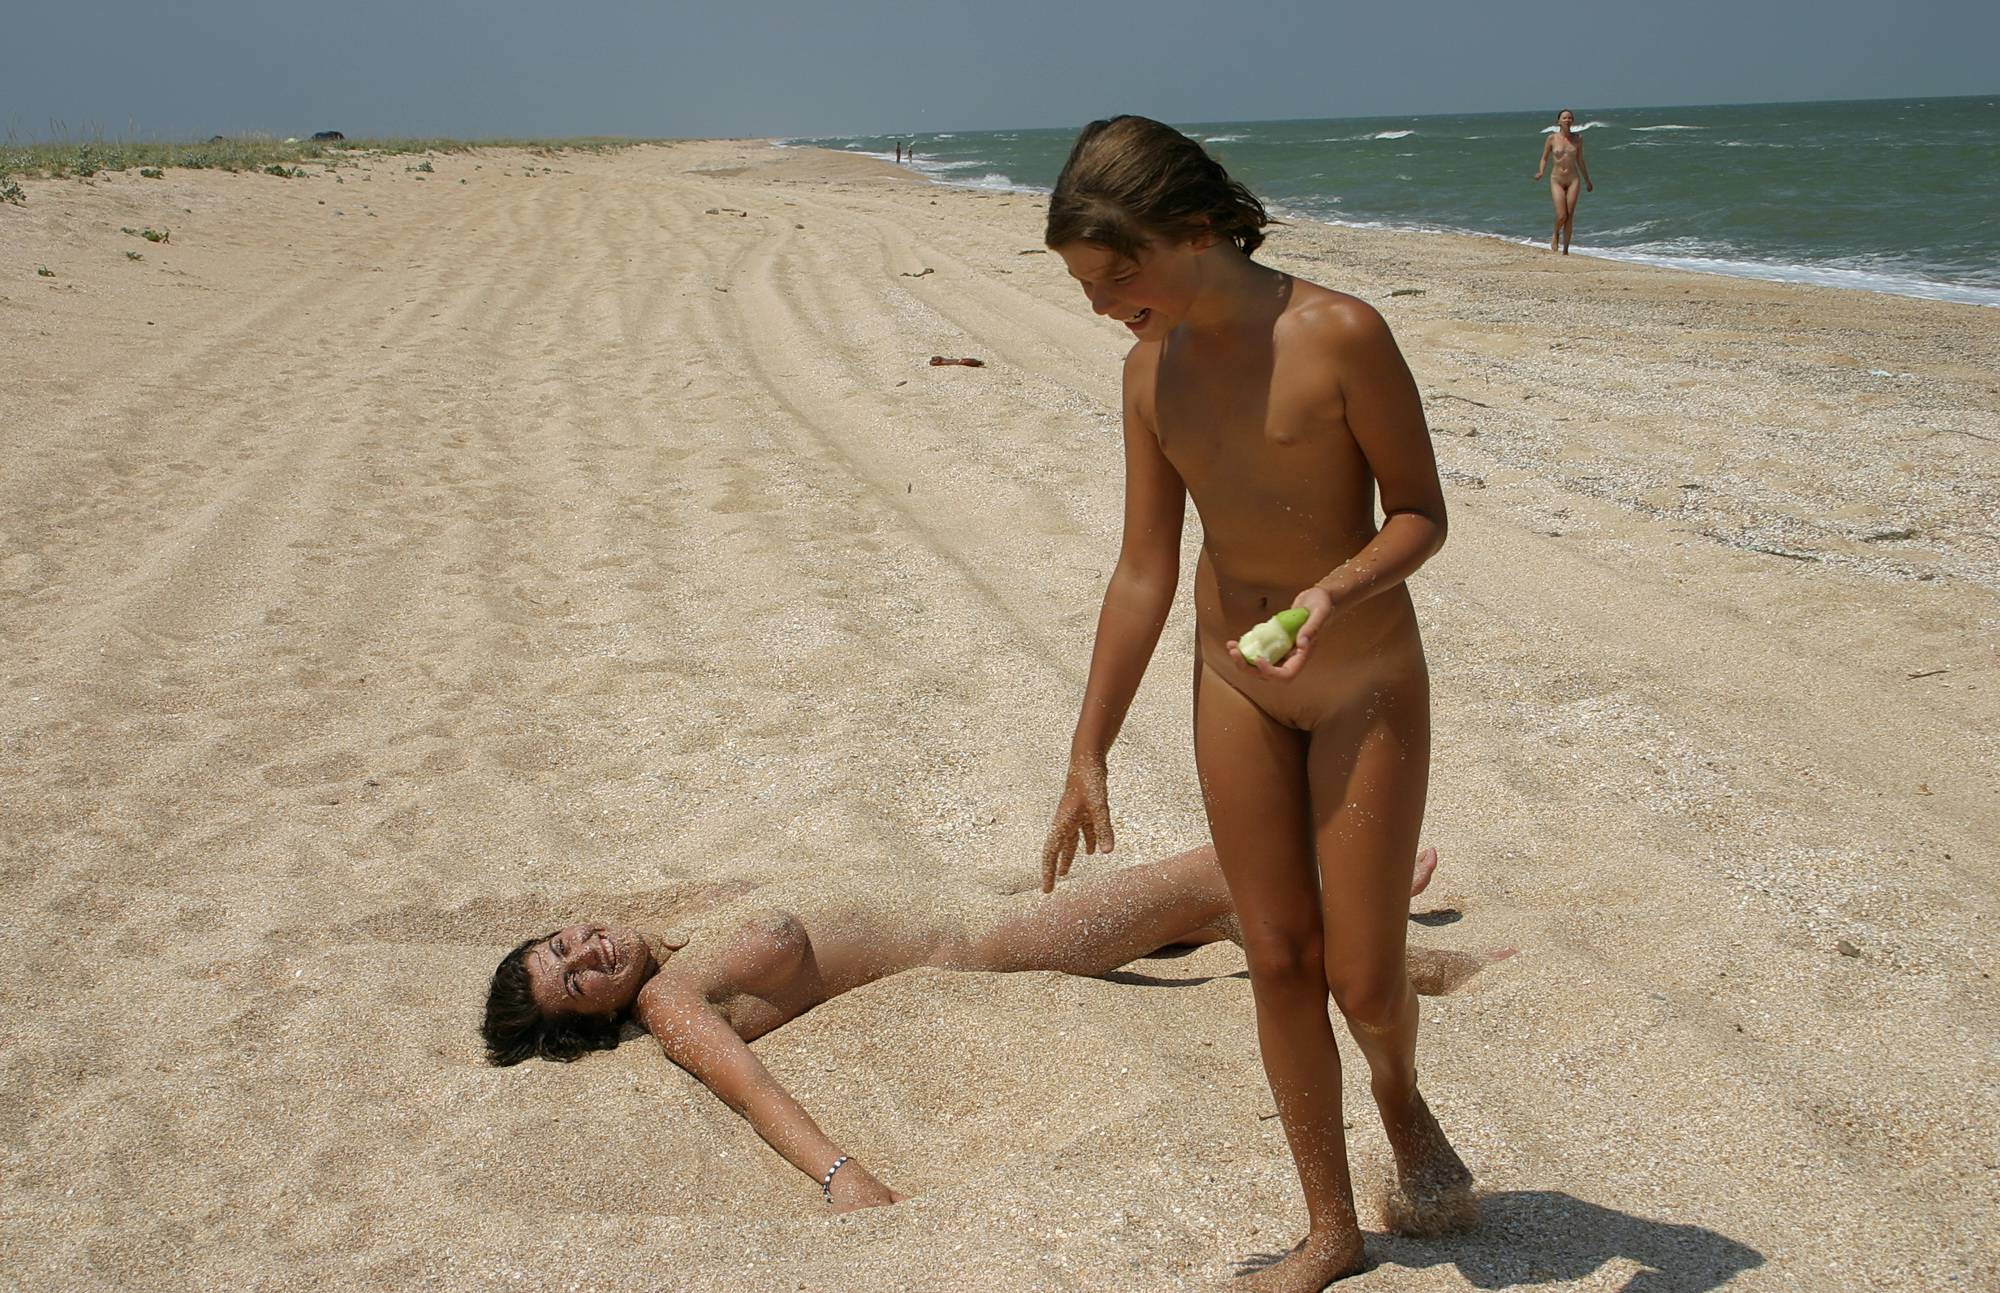 Pure Nudism Photos-Relaxing On The Beach - 3